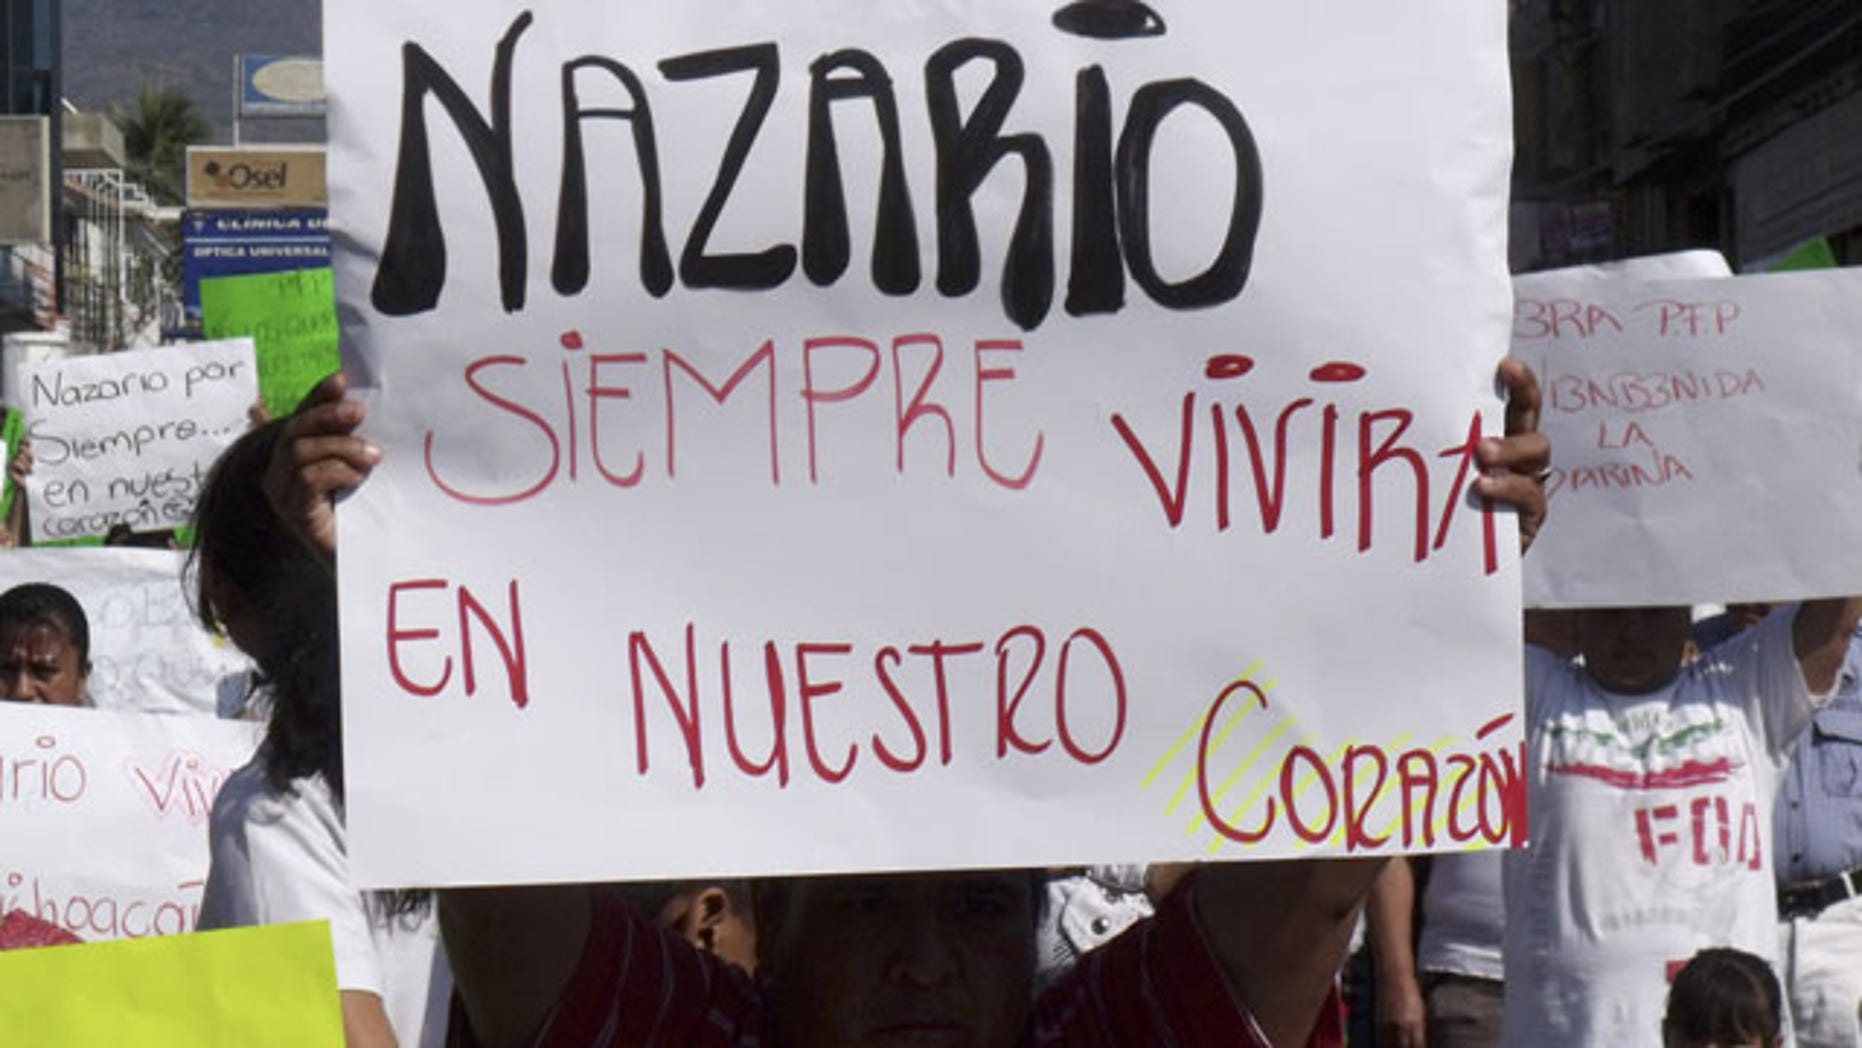 "FILE - In this Dec. 12, 2010 file photo, a man holds a sign that reads in Spanish ""Nazario will always live in our hearts,"" referring to La Familia drug cartel leader Nazario Moreno Gonzalez during a demonstration after the government announced he was killed in Apatzingan, Mexico. Years later on Sunday, March 9, 2014, officials say Moreno was killed in an early morning shootout. (AP Photo/Primera Plana, File)"